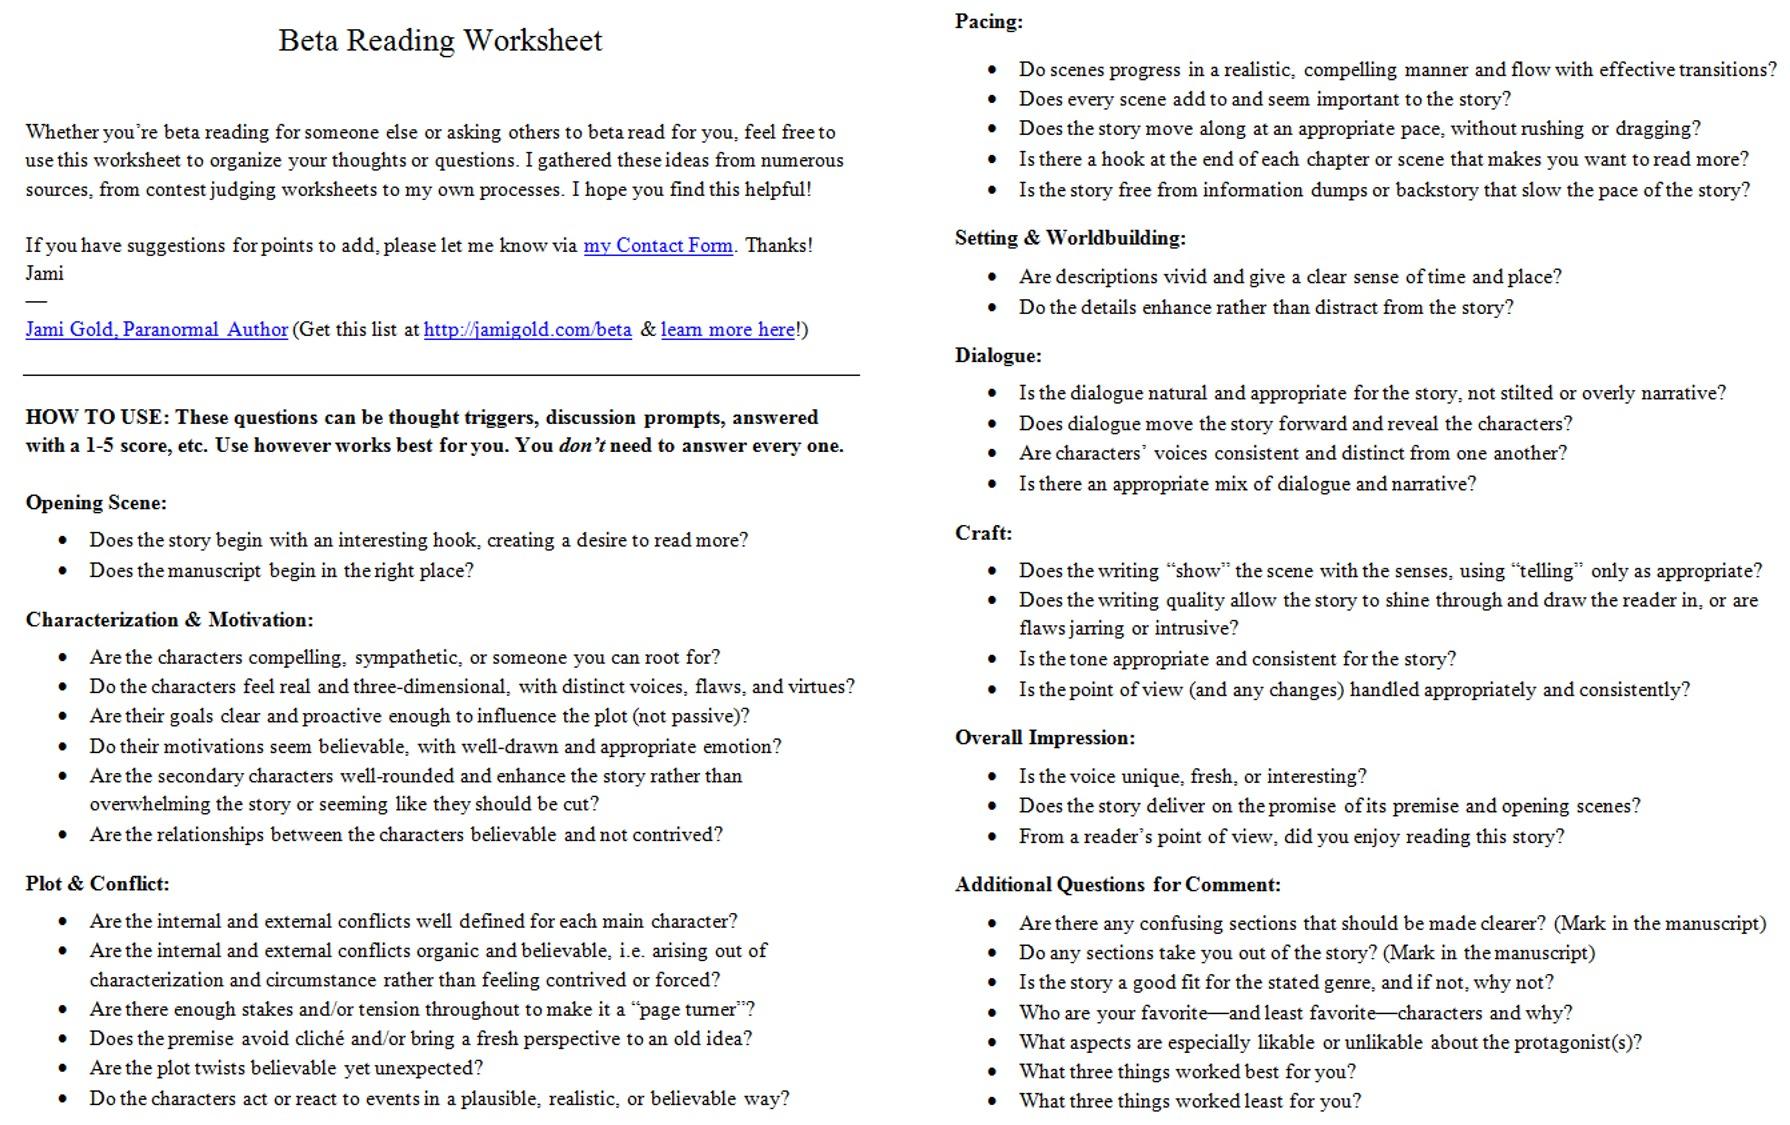 Aldiablosus  Unique Worksheets For Writers  Jami Gold Paranormal Author With Hot Screen Shot Of The Twopage Beta Reading Worksheet With Delightful Preposition Of Time Worksheet Also Food And Nutrition Worksheets In Addition Medieval Times Worksheets And Science Homework Worksheets As Well As Kindergarten Problem Solving Worksheets Additionally Standard Expanded And Word Form Worksheets From Jamigoldcom With Aldiablosus  Hot Worksheets For Writers  Jami Gold Paranormal Author With Delightful Screen Shot Of The Twopage Beta Reading Worksheet And Unique Preposition Of Time Worksheet Also Food And Nutrition Worksheets In Addition Medieval Times Worksheets From Jamigoldcom